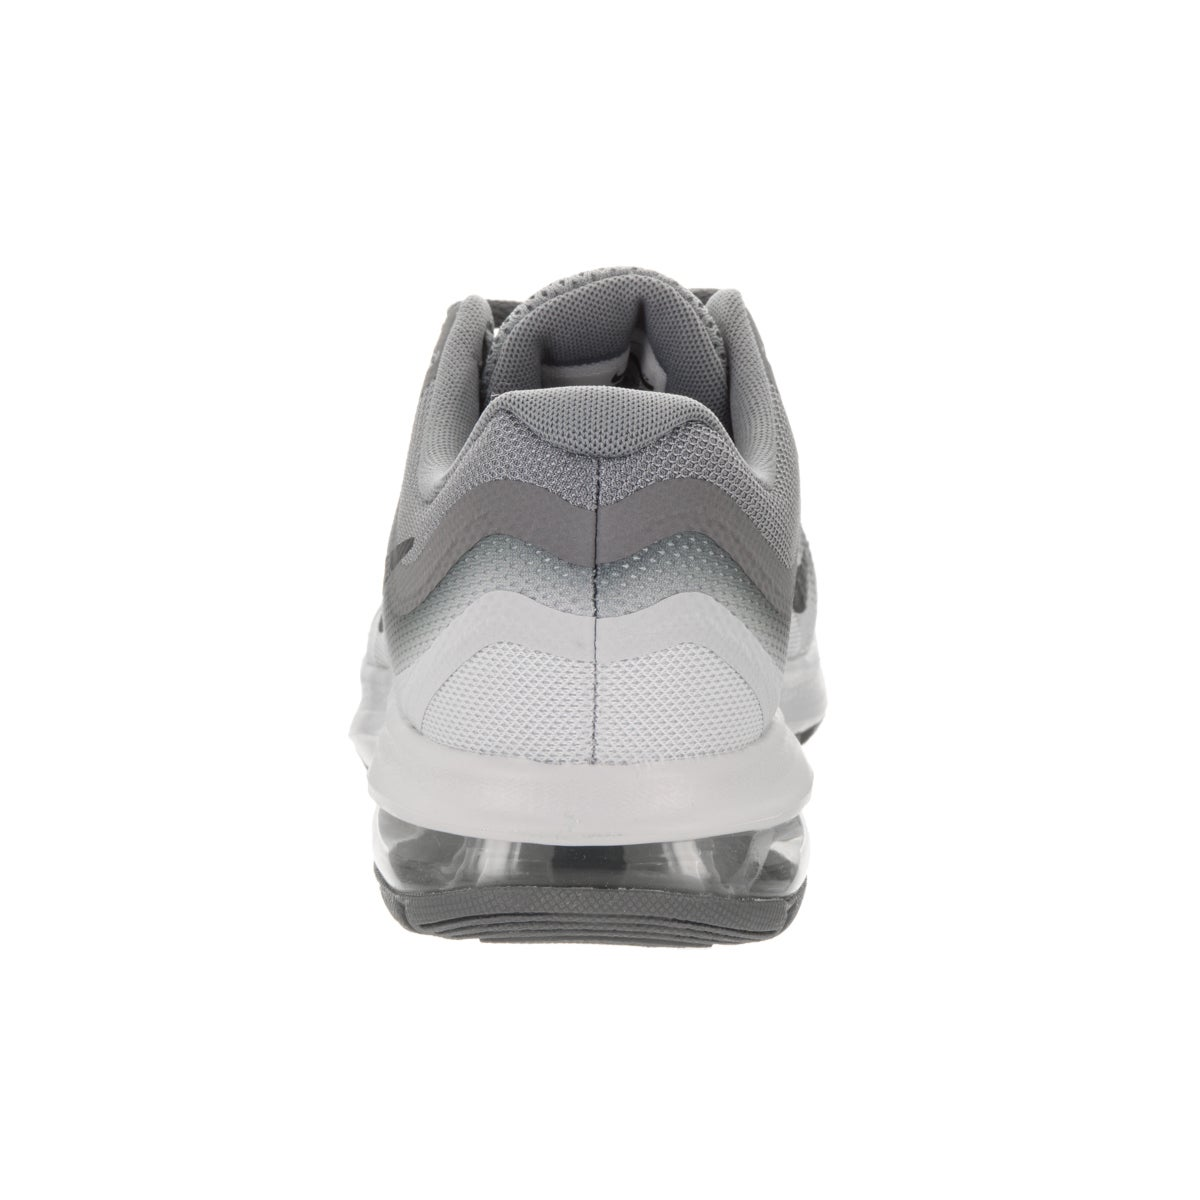 da96c9b8a5a0 Shop Nike Kids Air Max Dynasty 2 (GS) Running Shoe - Free Shipping Today -  Overstock - 15616862